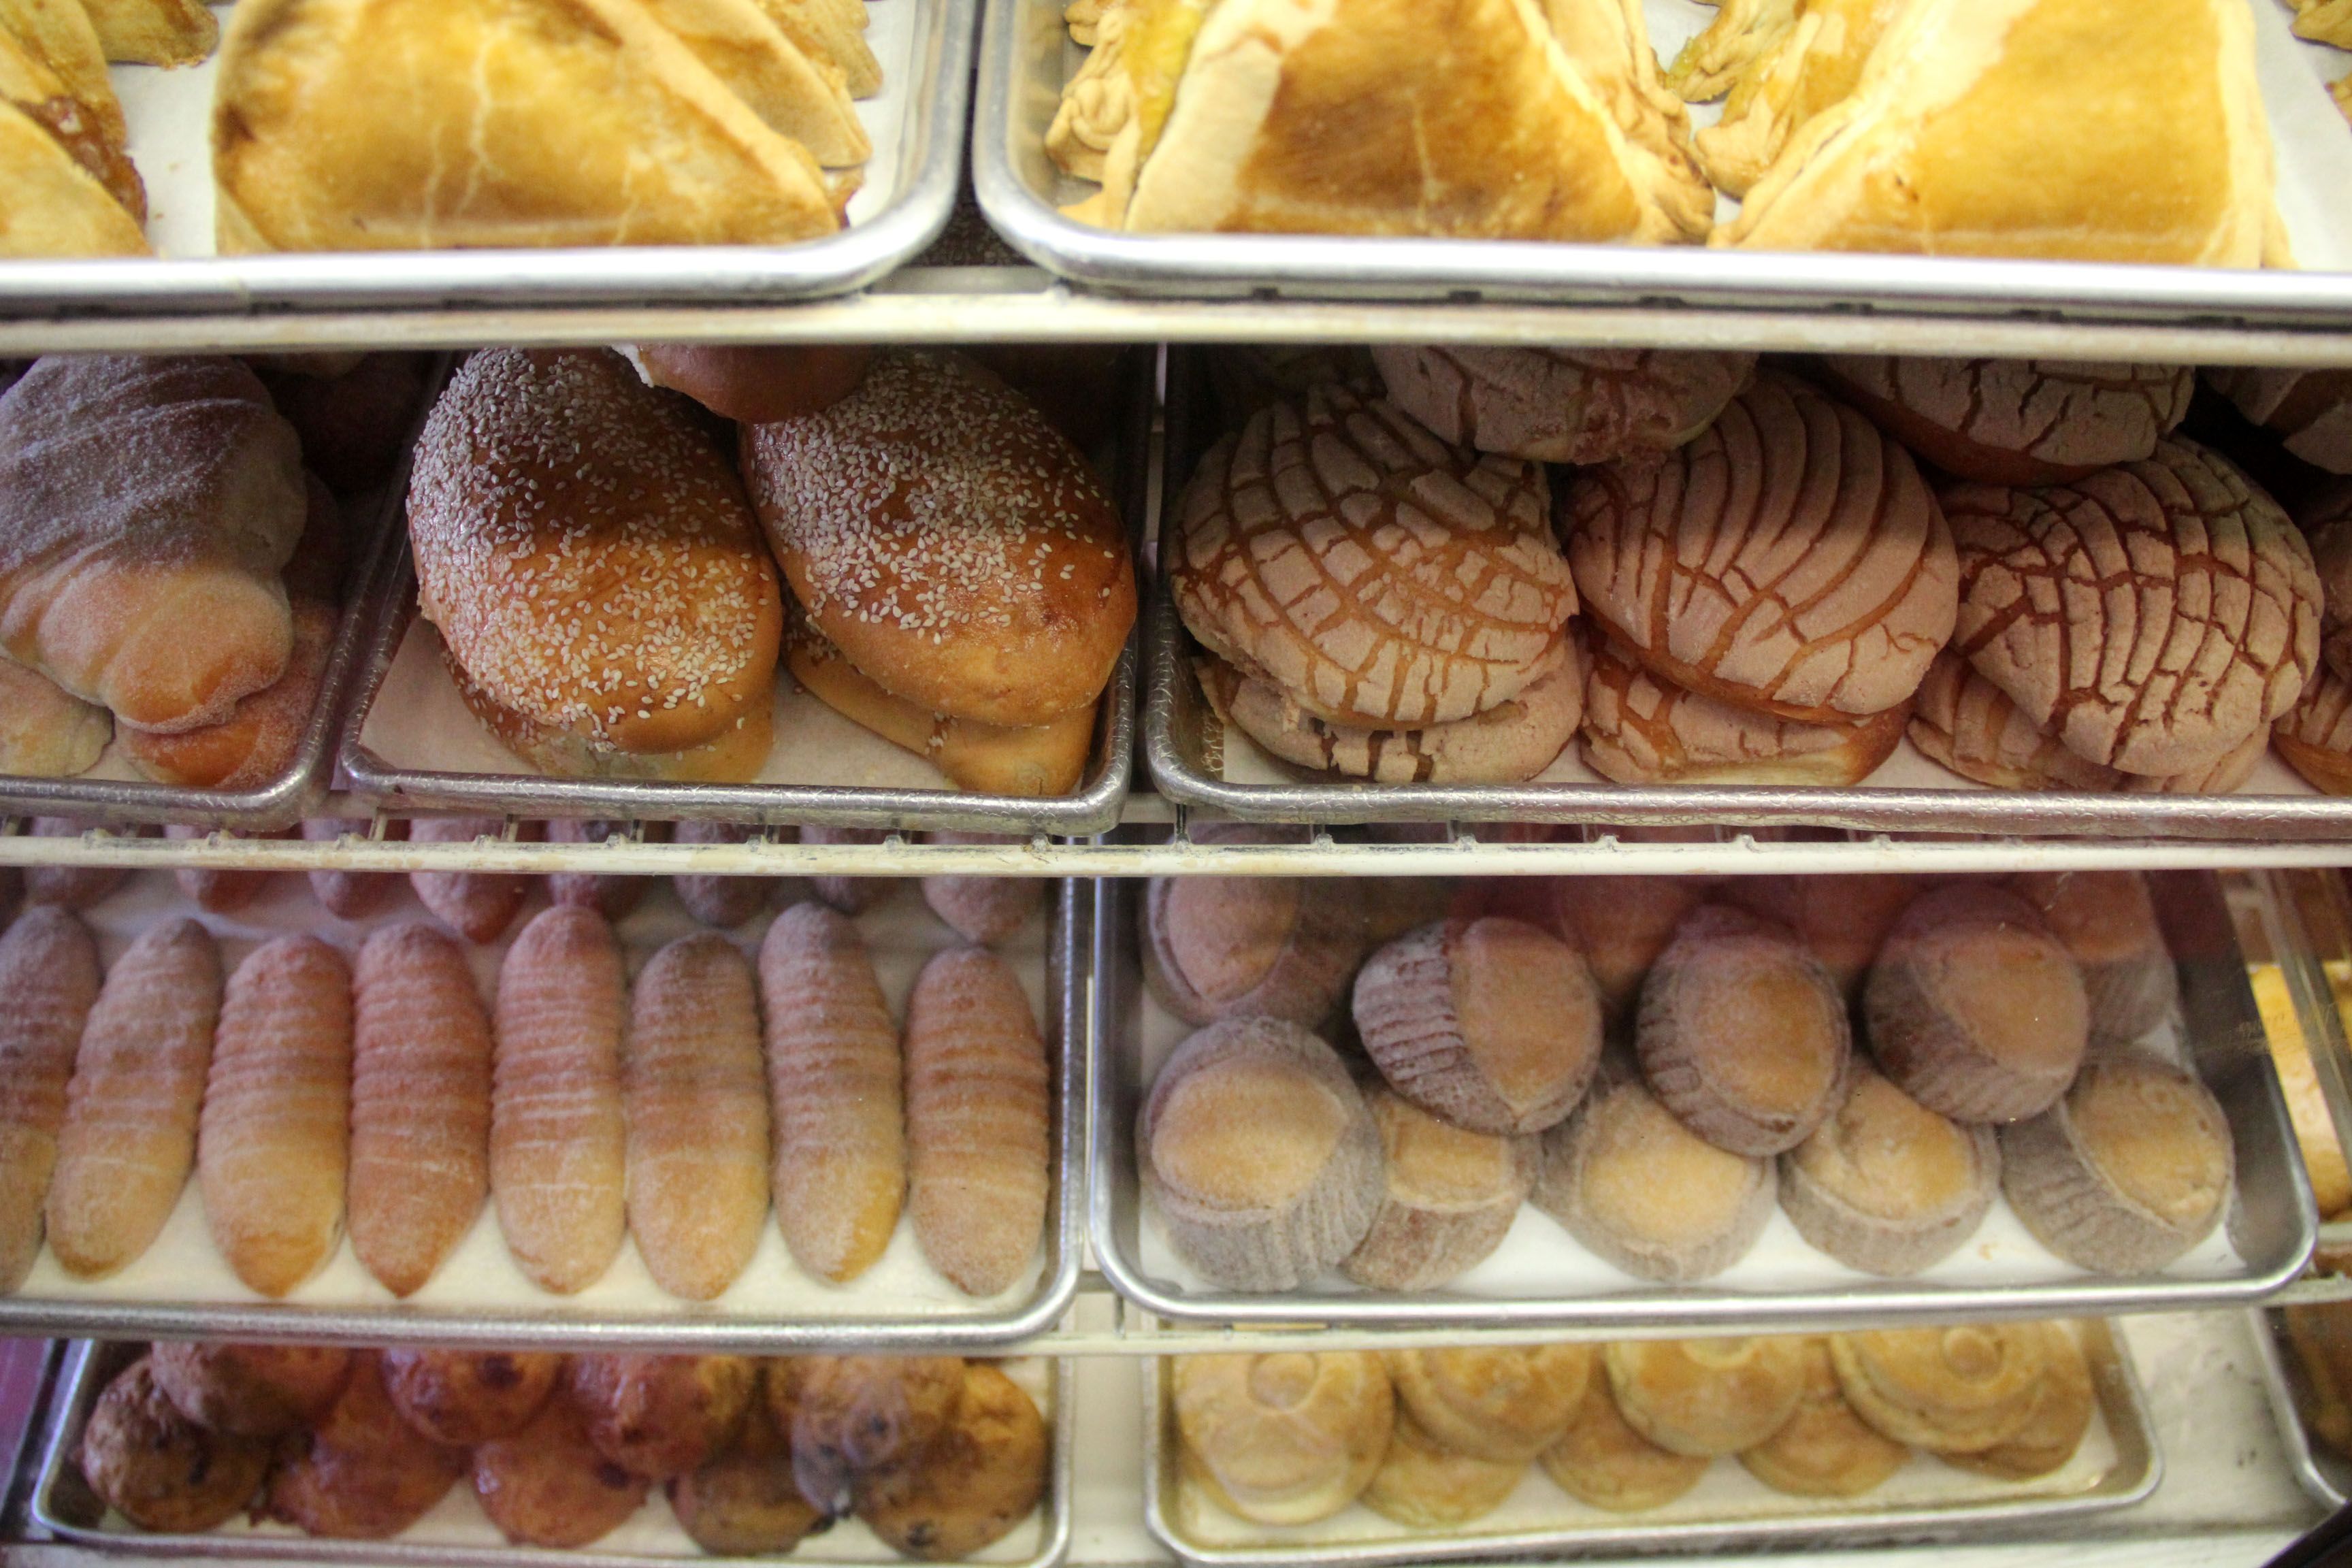 Bakery La Mejor has been located at 24th and Mission in San Francisco's Mission District for 20 years. They're a Mexican-American bakery that has adapted to and welcomed the changes in their neighborhood.